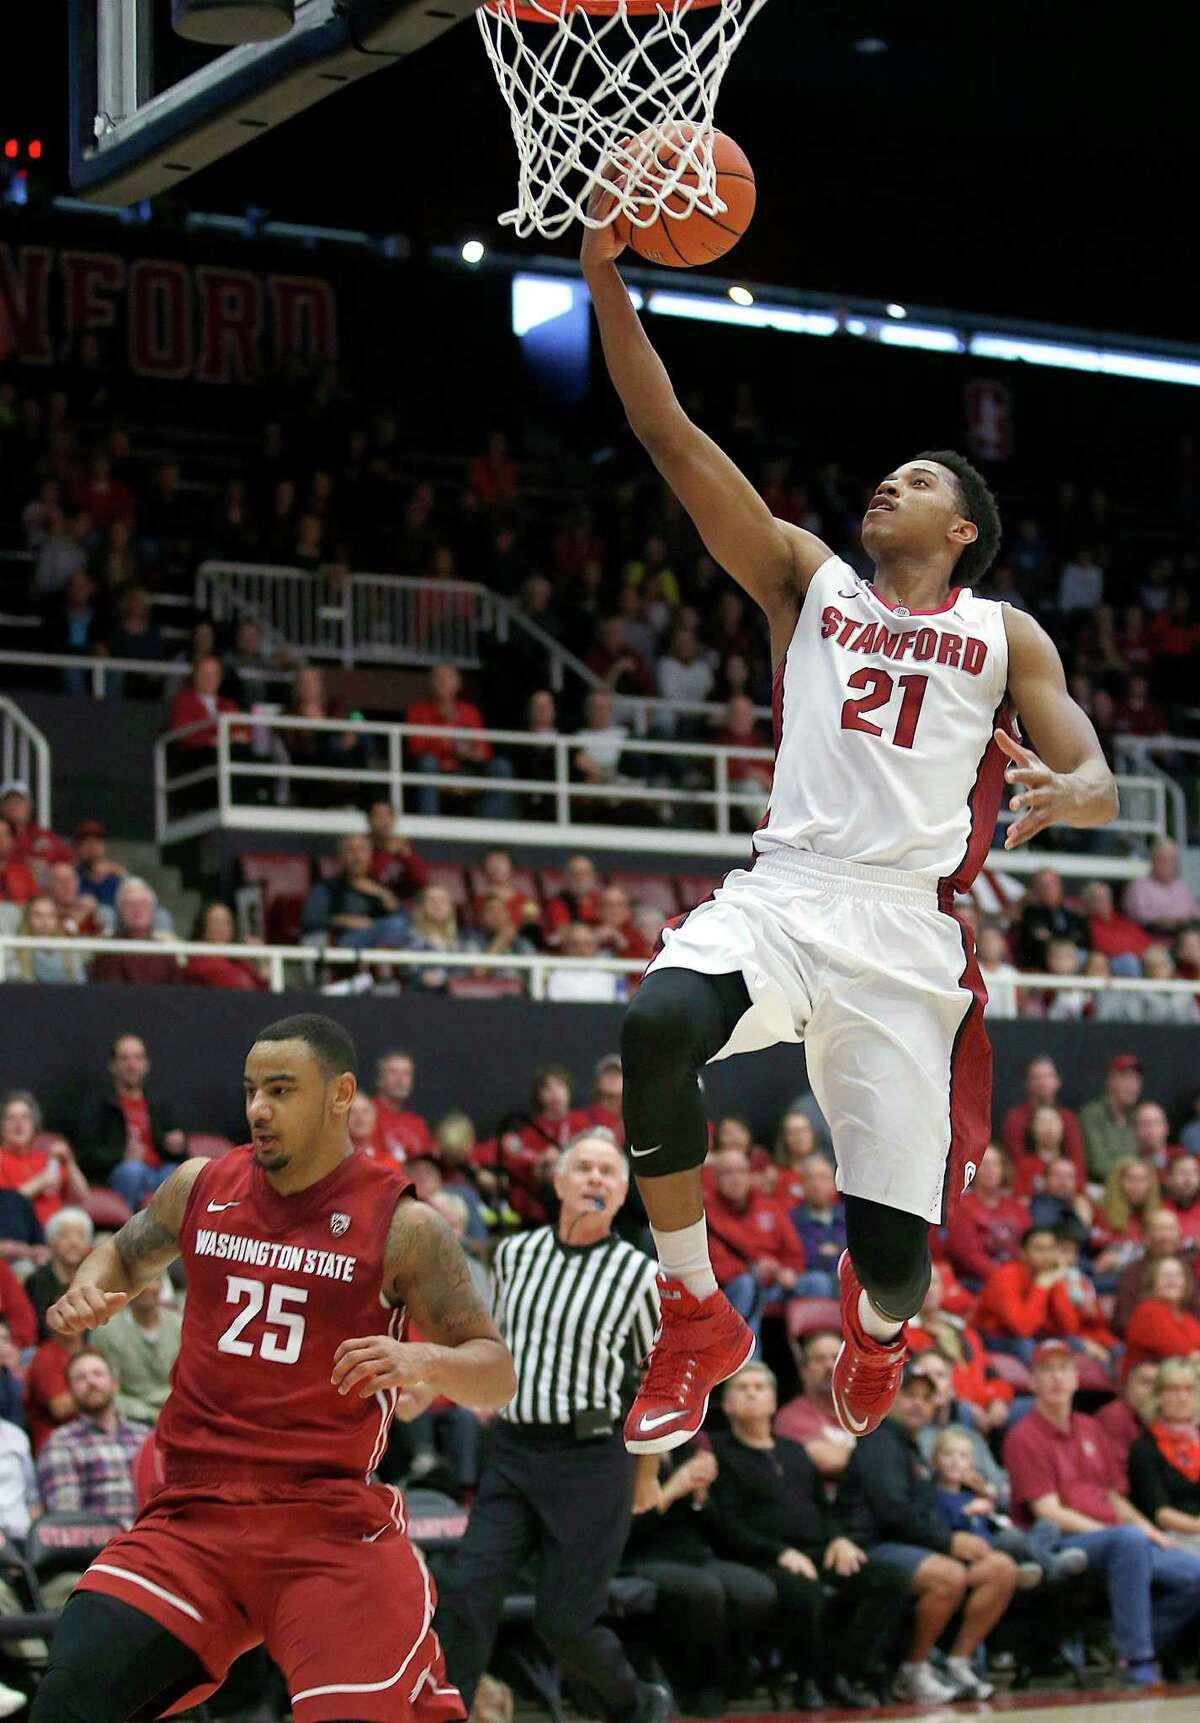 Stanford forward Anthony Brown (21) drives to the basket past Washington State guard DaVonte Lacy (25) during the second half of an NCAA college basketball game on Friday, Jan. 2, 2015, in Stanford, Calif. Stanford won 71-56. (AP Photo/Tony Avelar)